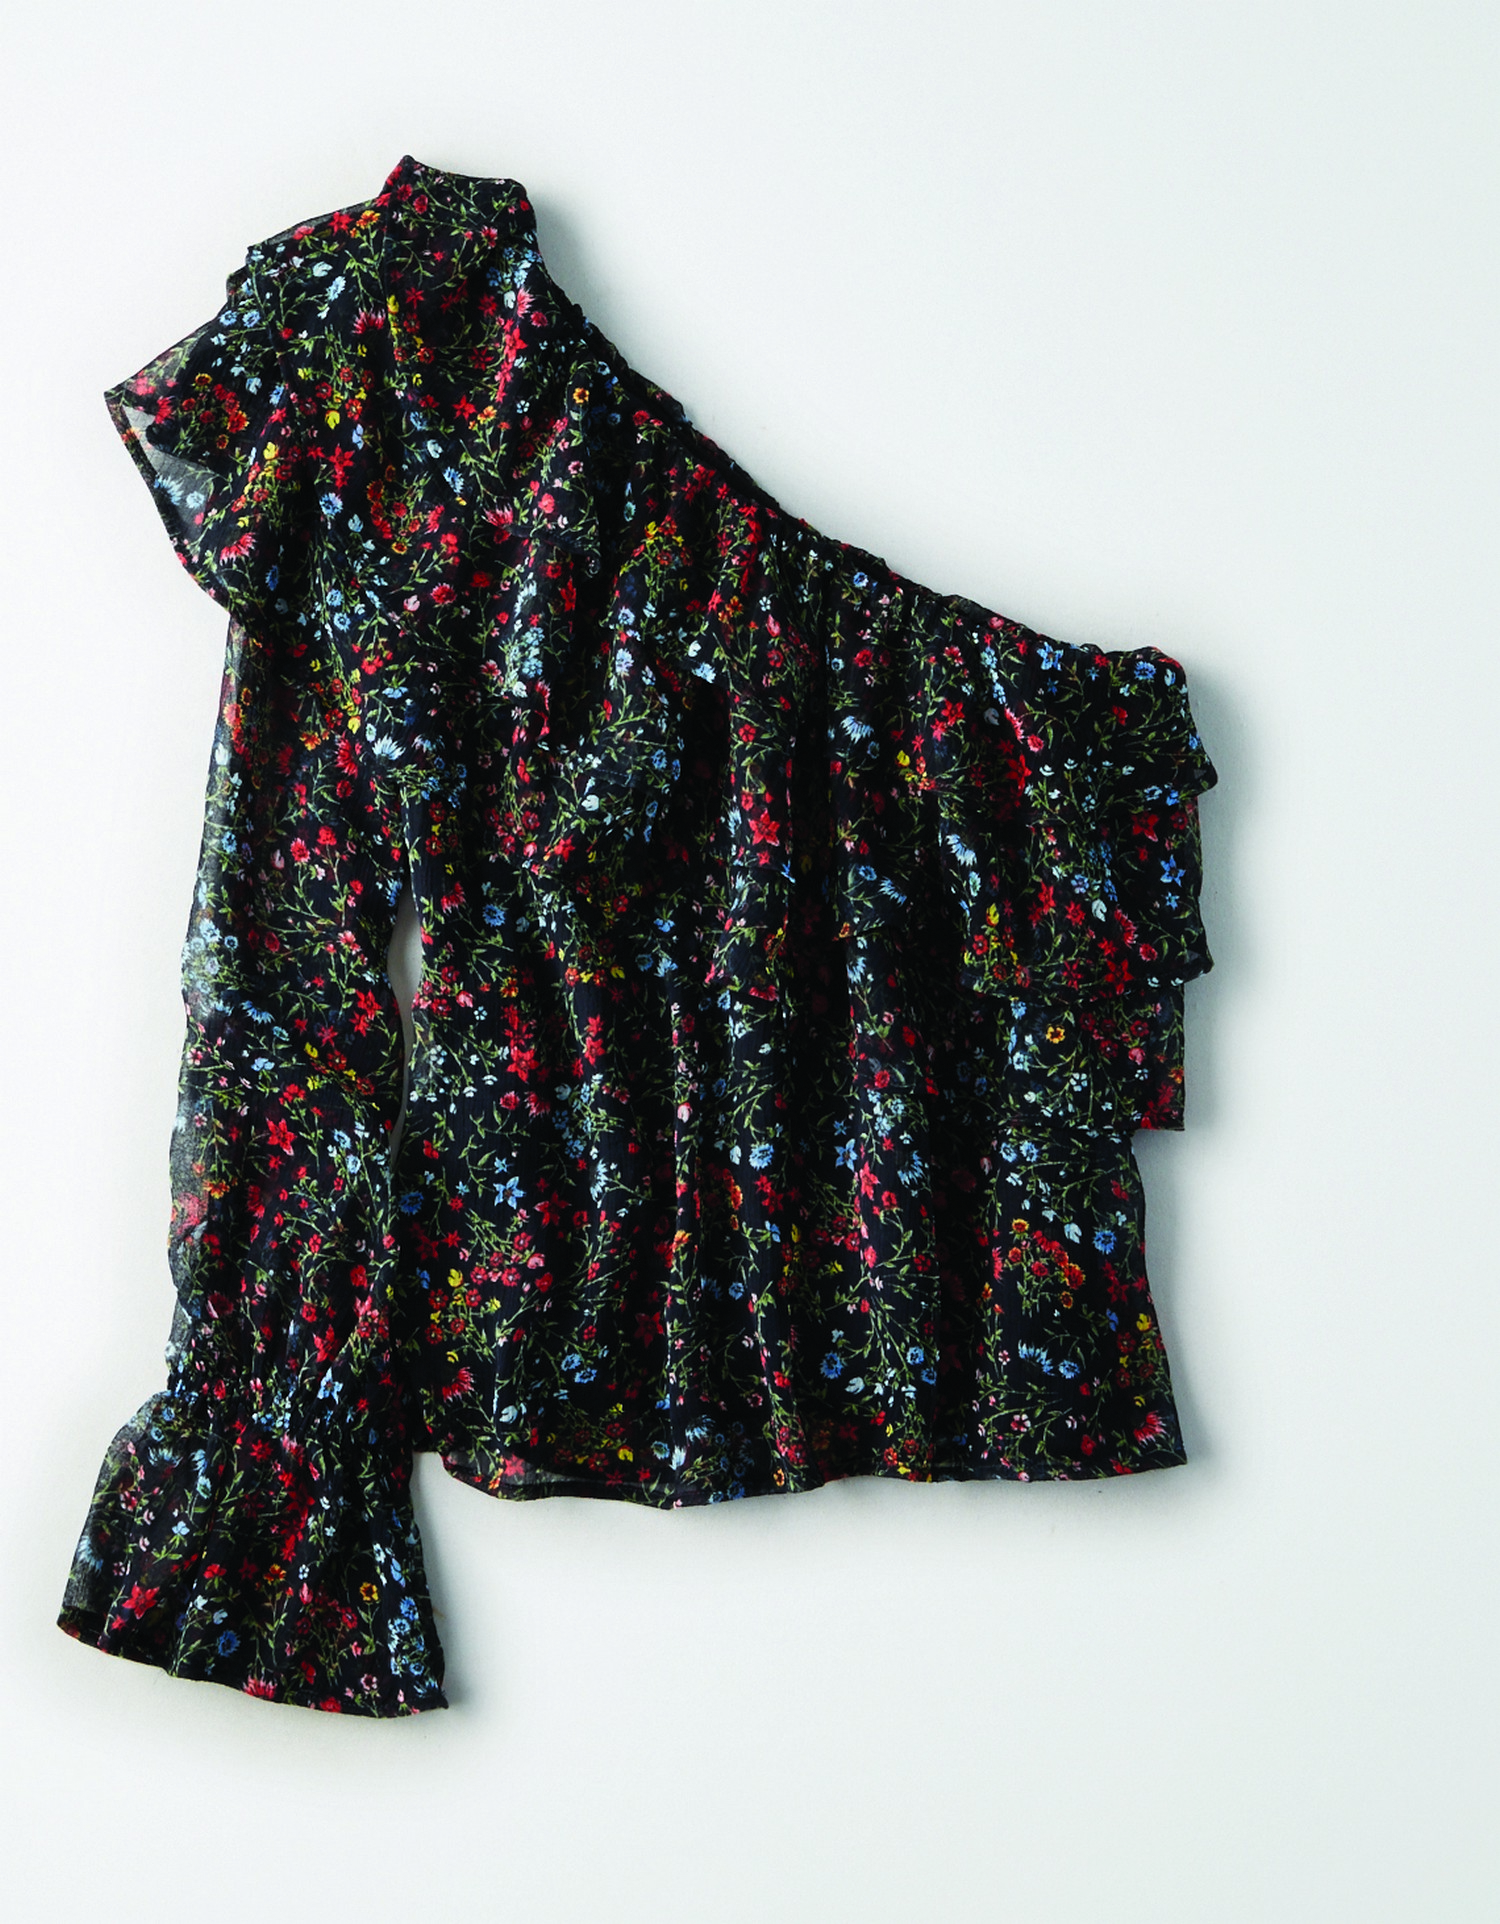 AE - W - Apparel - ONE SHOULDER FLORAL RUFFLE TOP - Black w/Red and blue small floral print allover - Three Tier ruffle flaps around top - Solid Black liner BG *Tracked